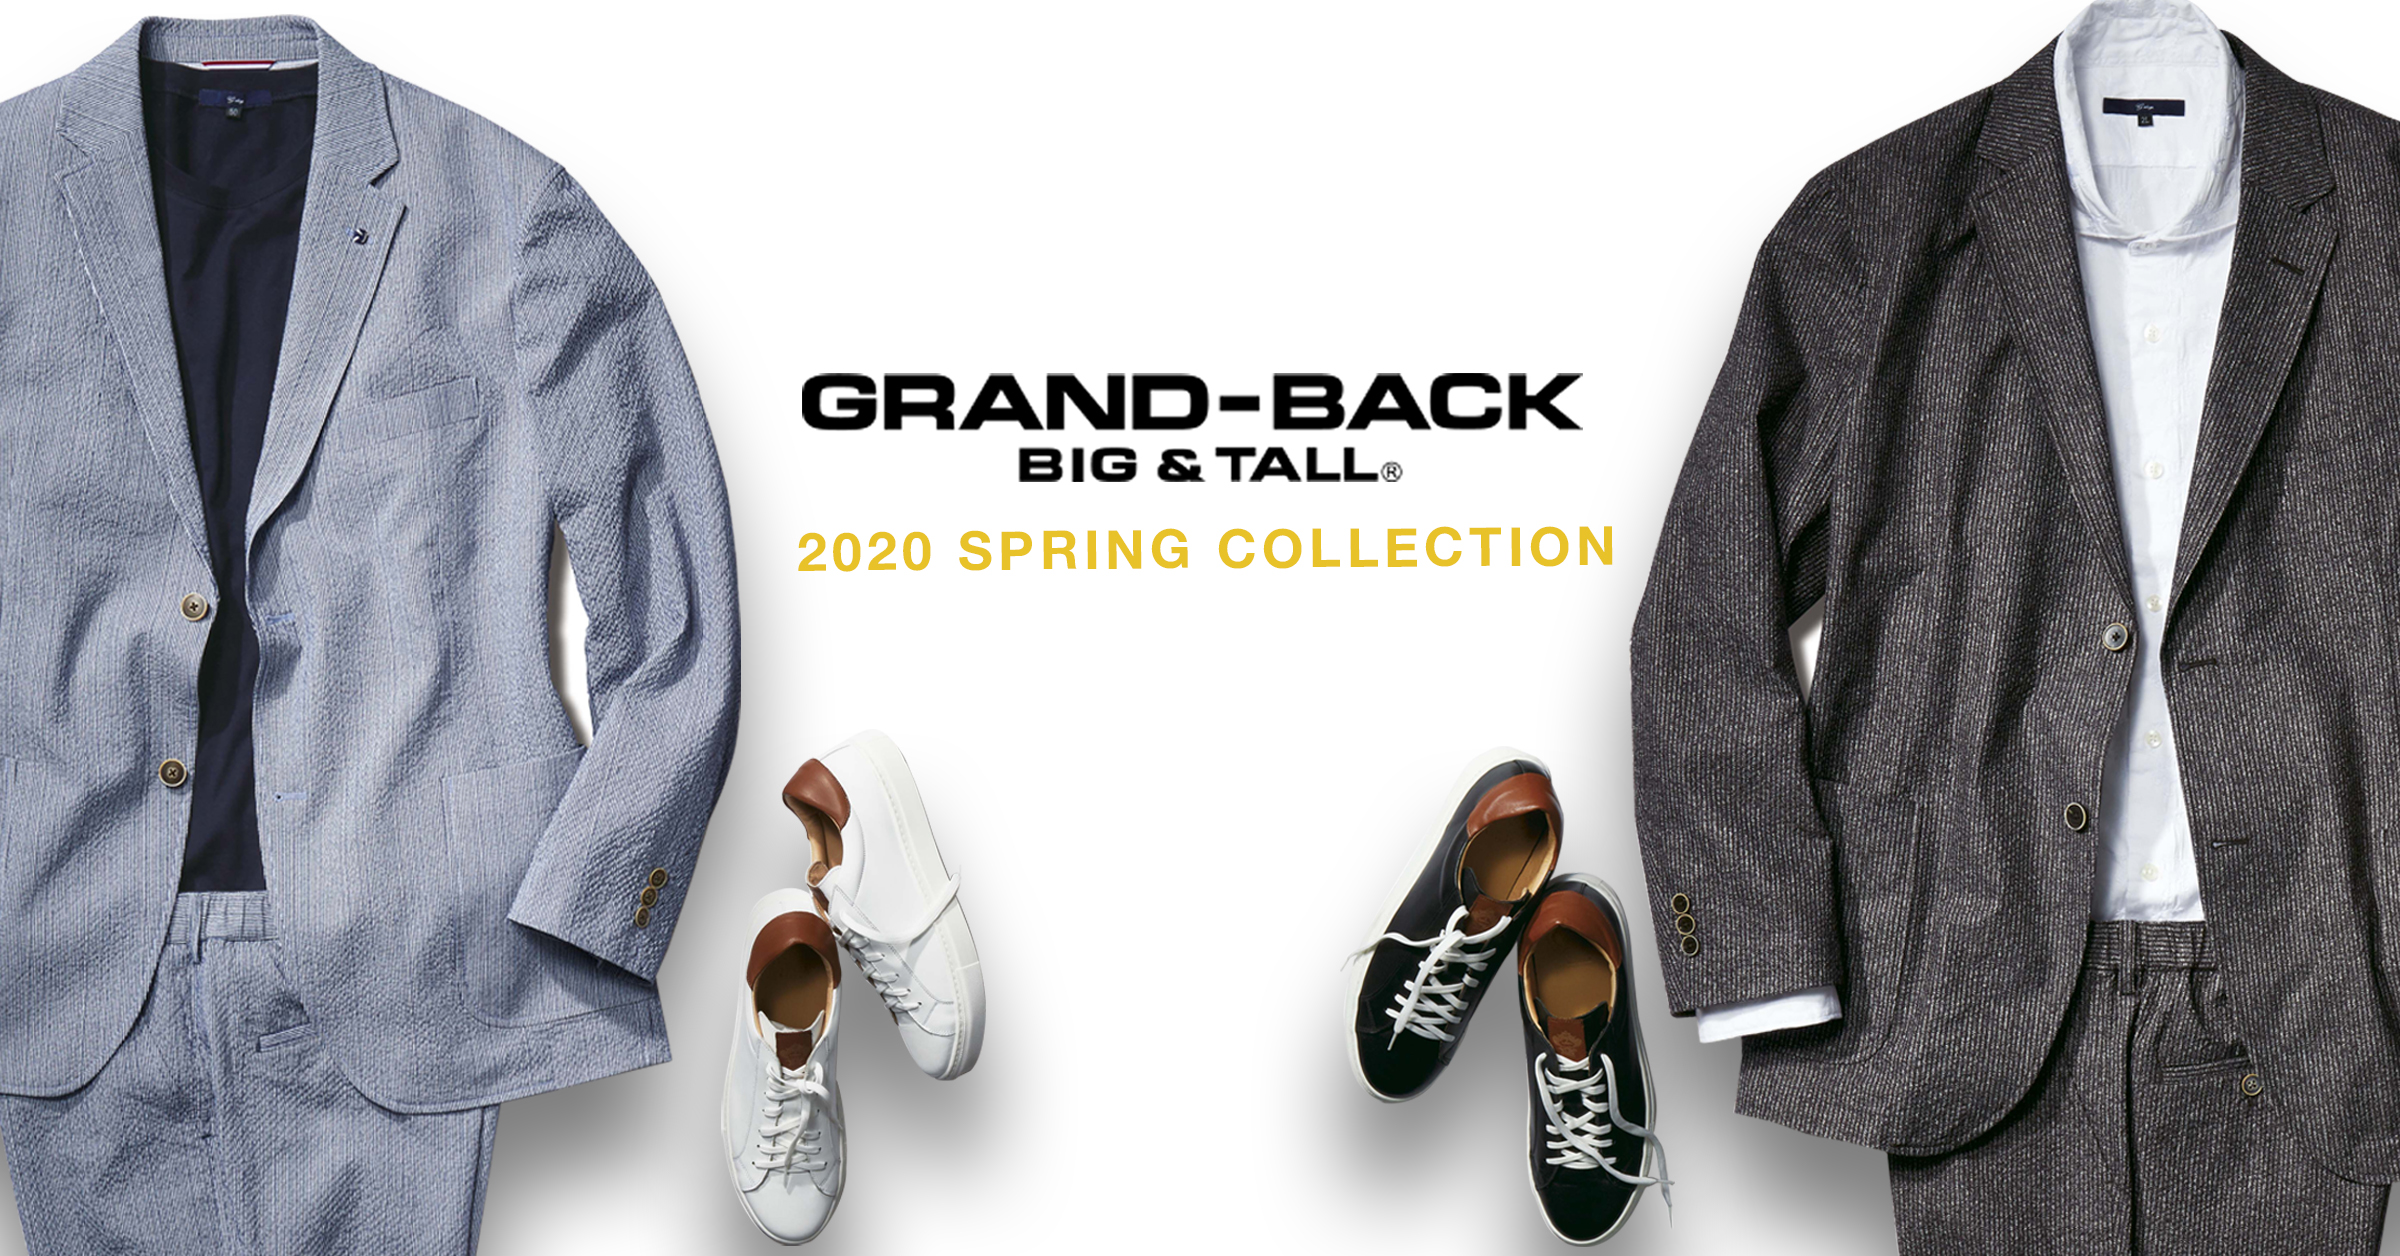 GRAND BACK 2020 SPRING COLLECTION